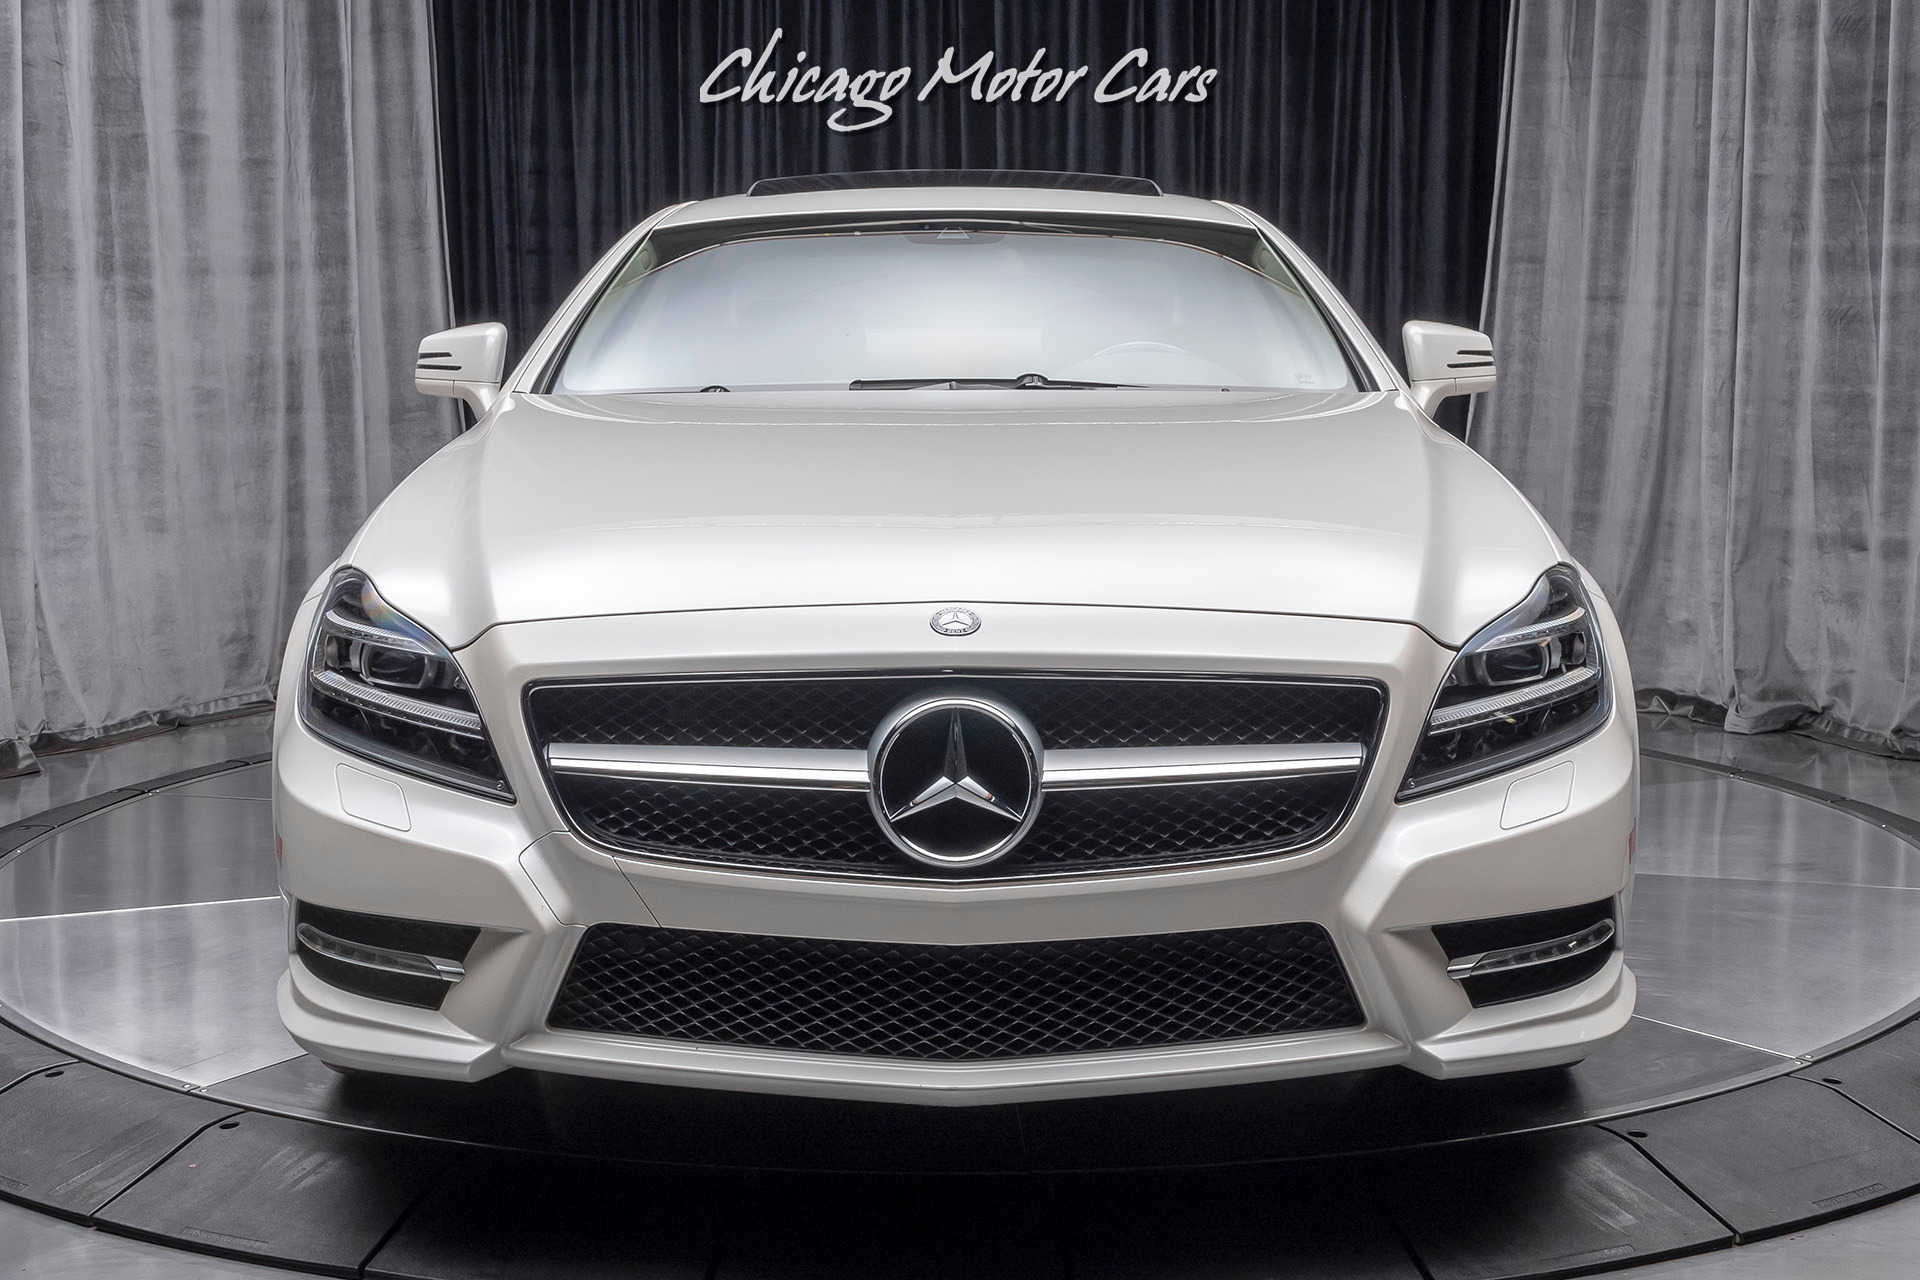 Used-2012-Mercedes-Benz-CLS550-4-Matic-Sedan-Sport-Package-Only-23k-Miles-LOADED